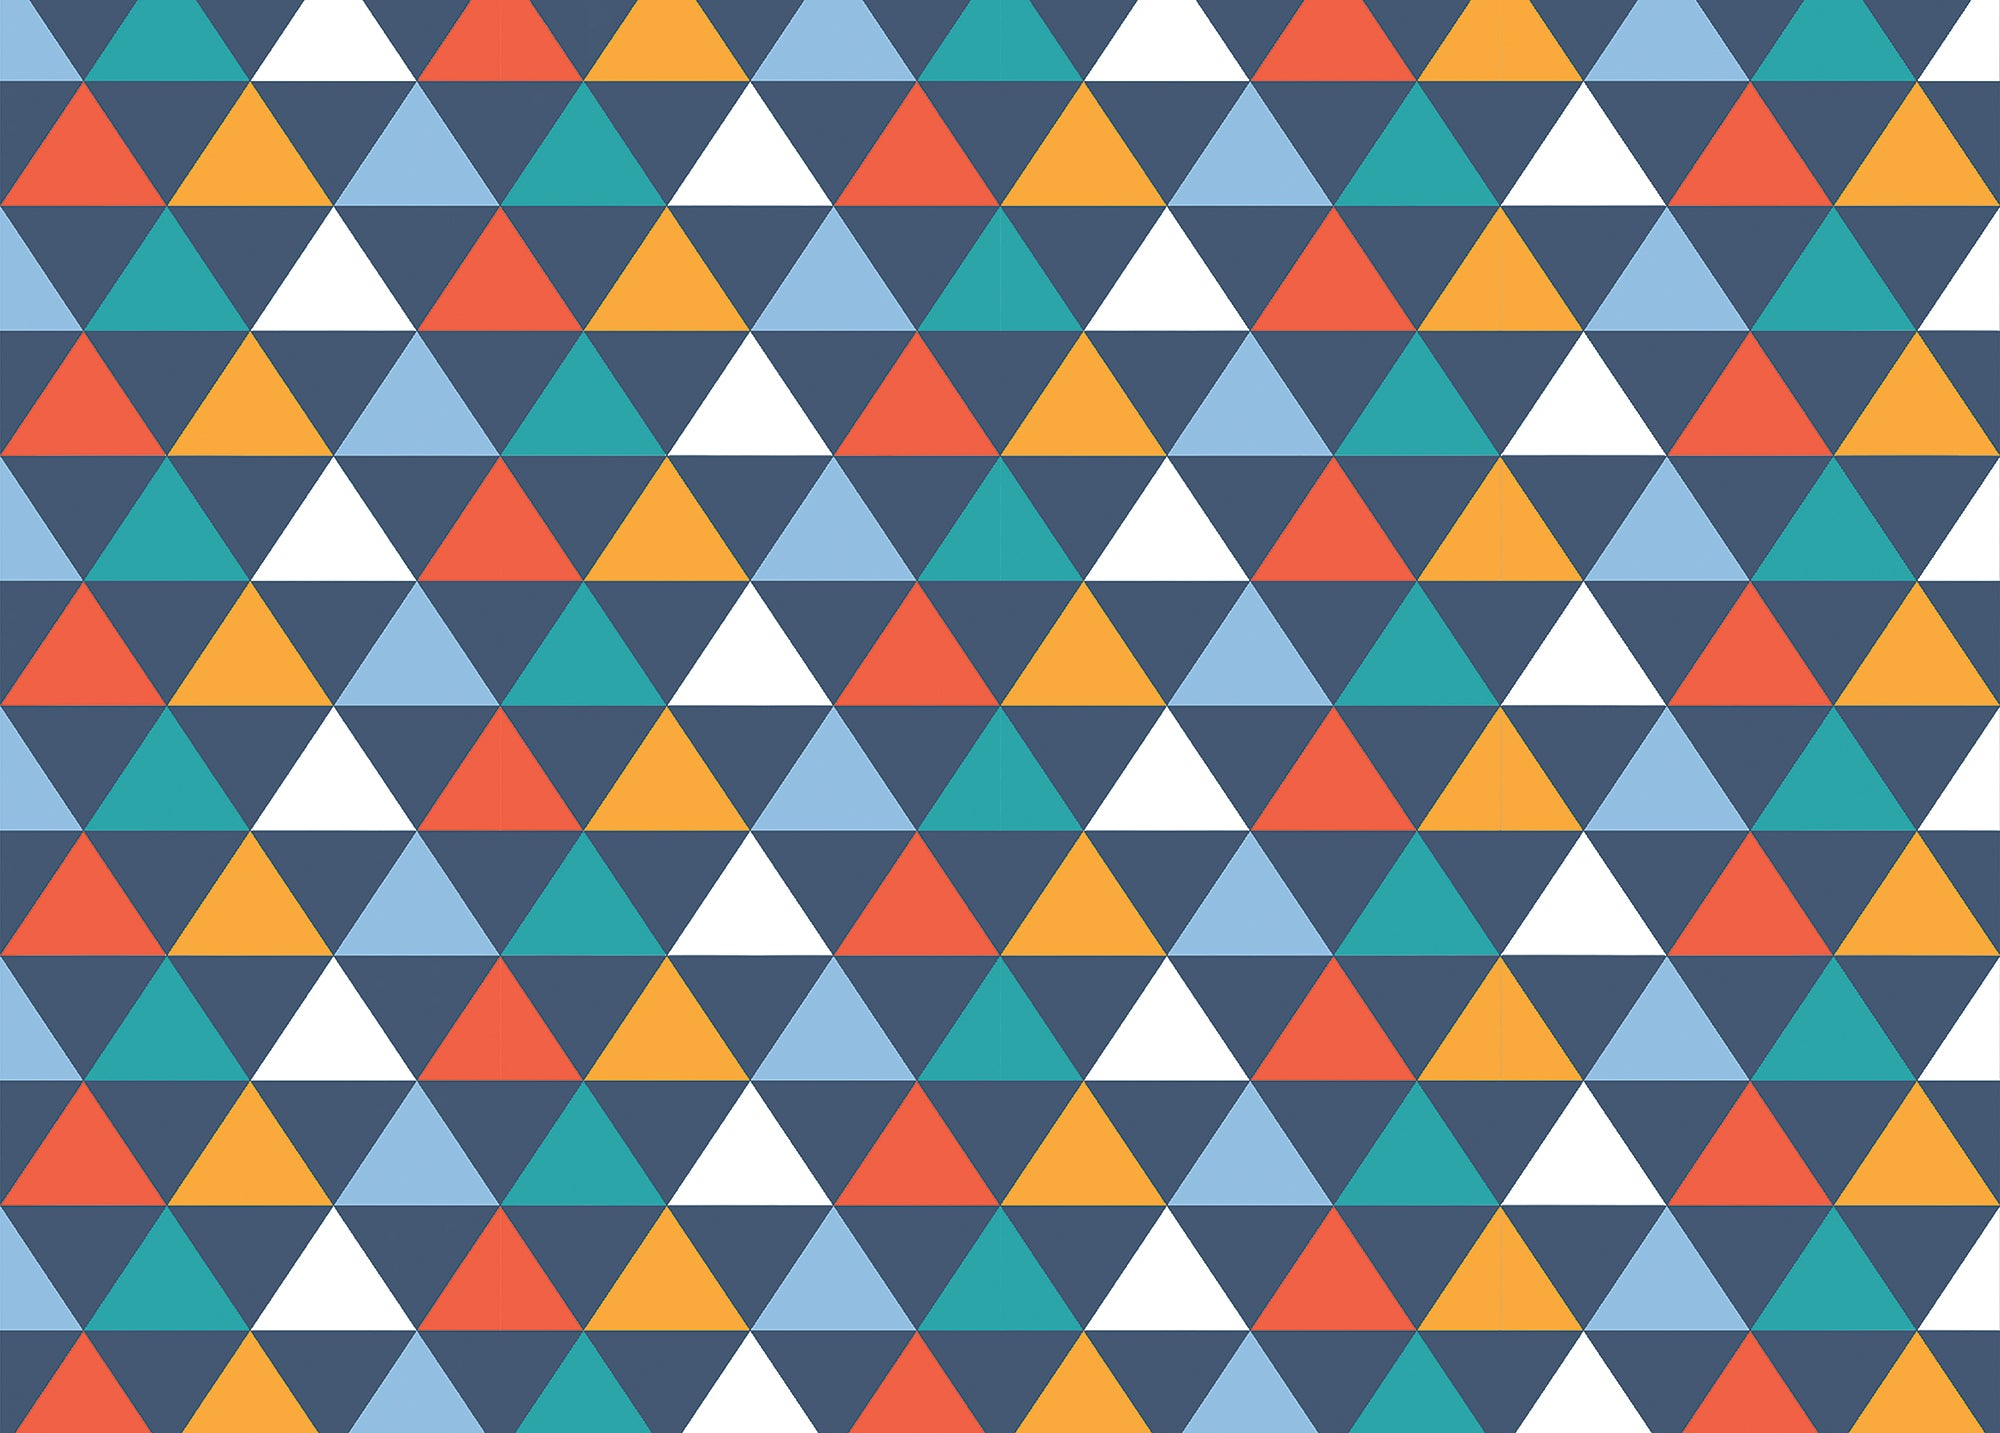 Triangle wrapping paper - Inspired